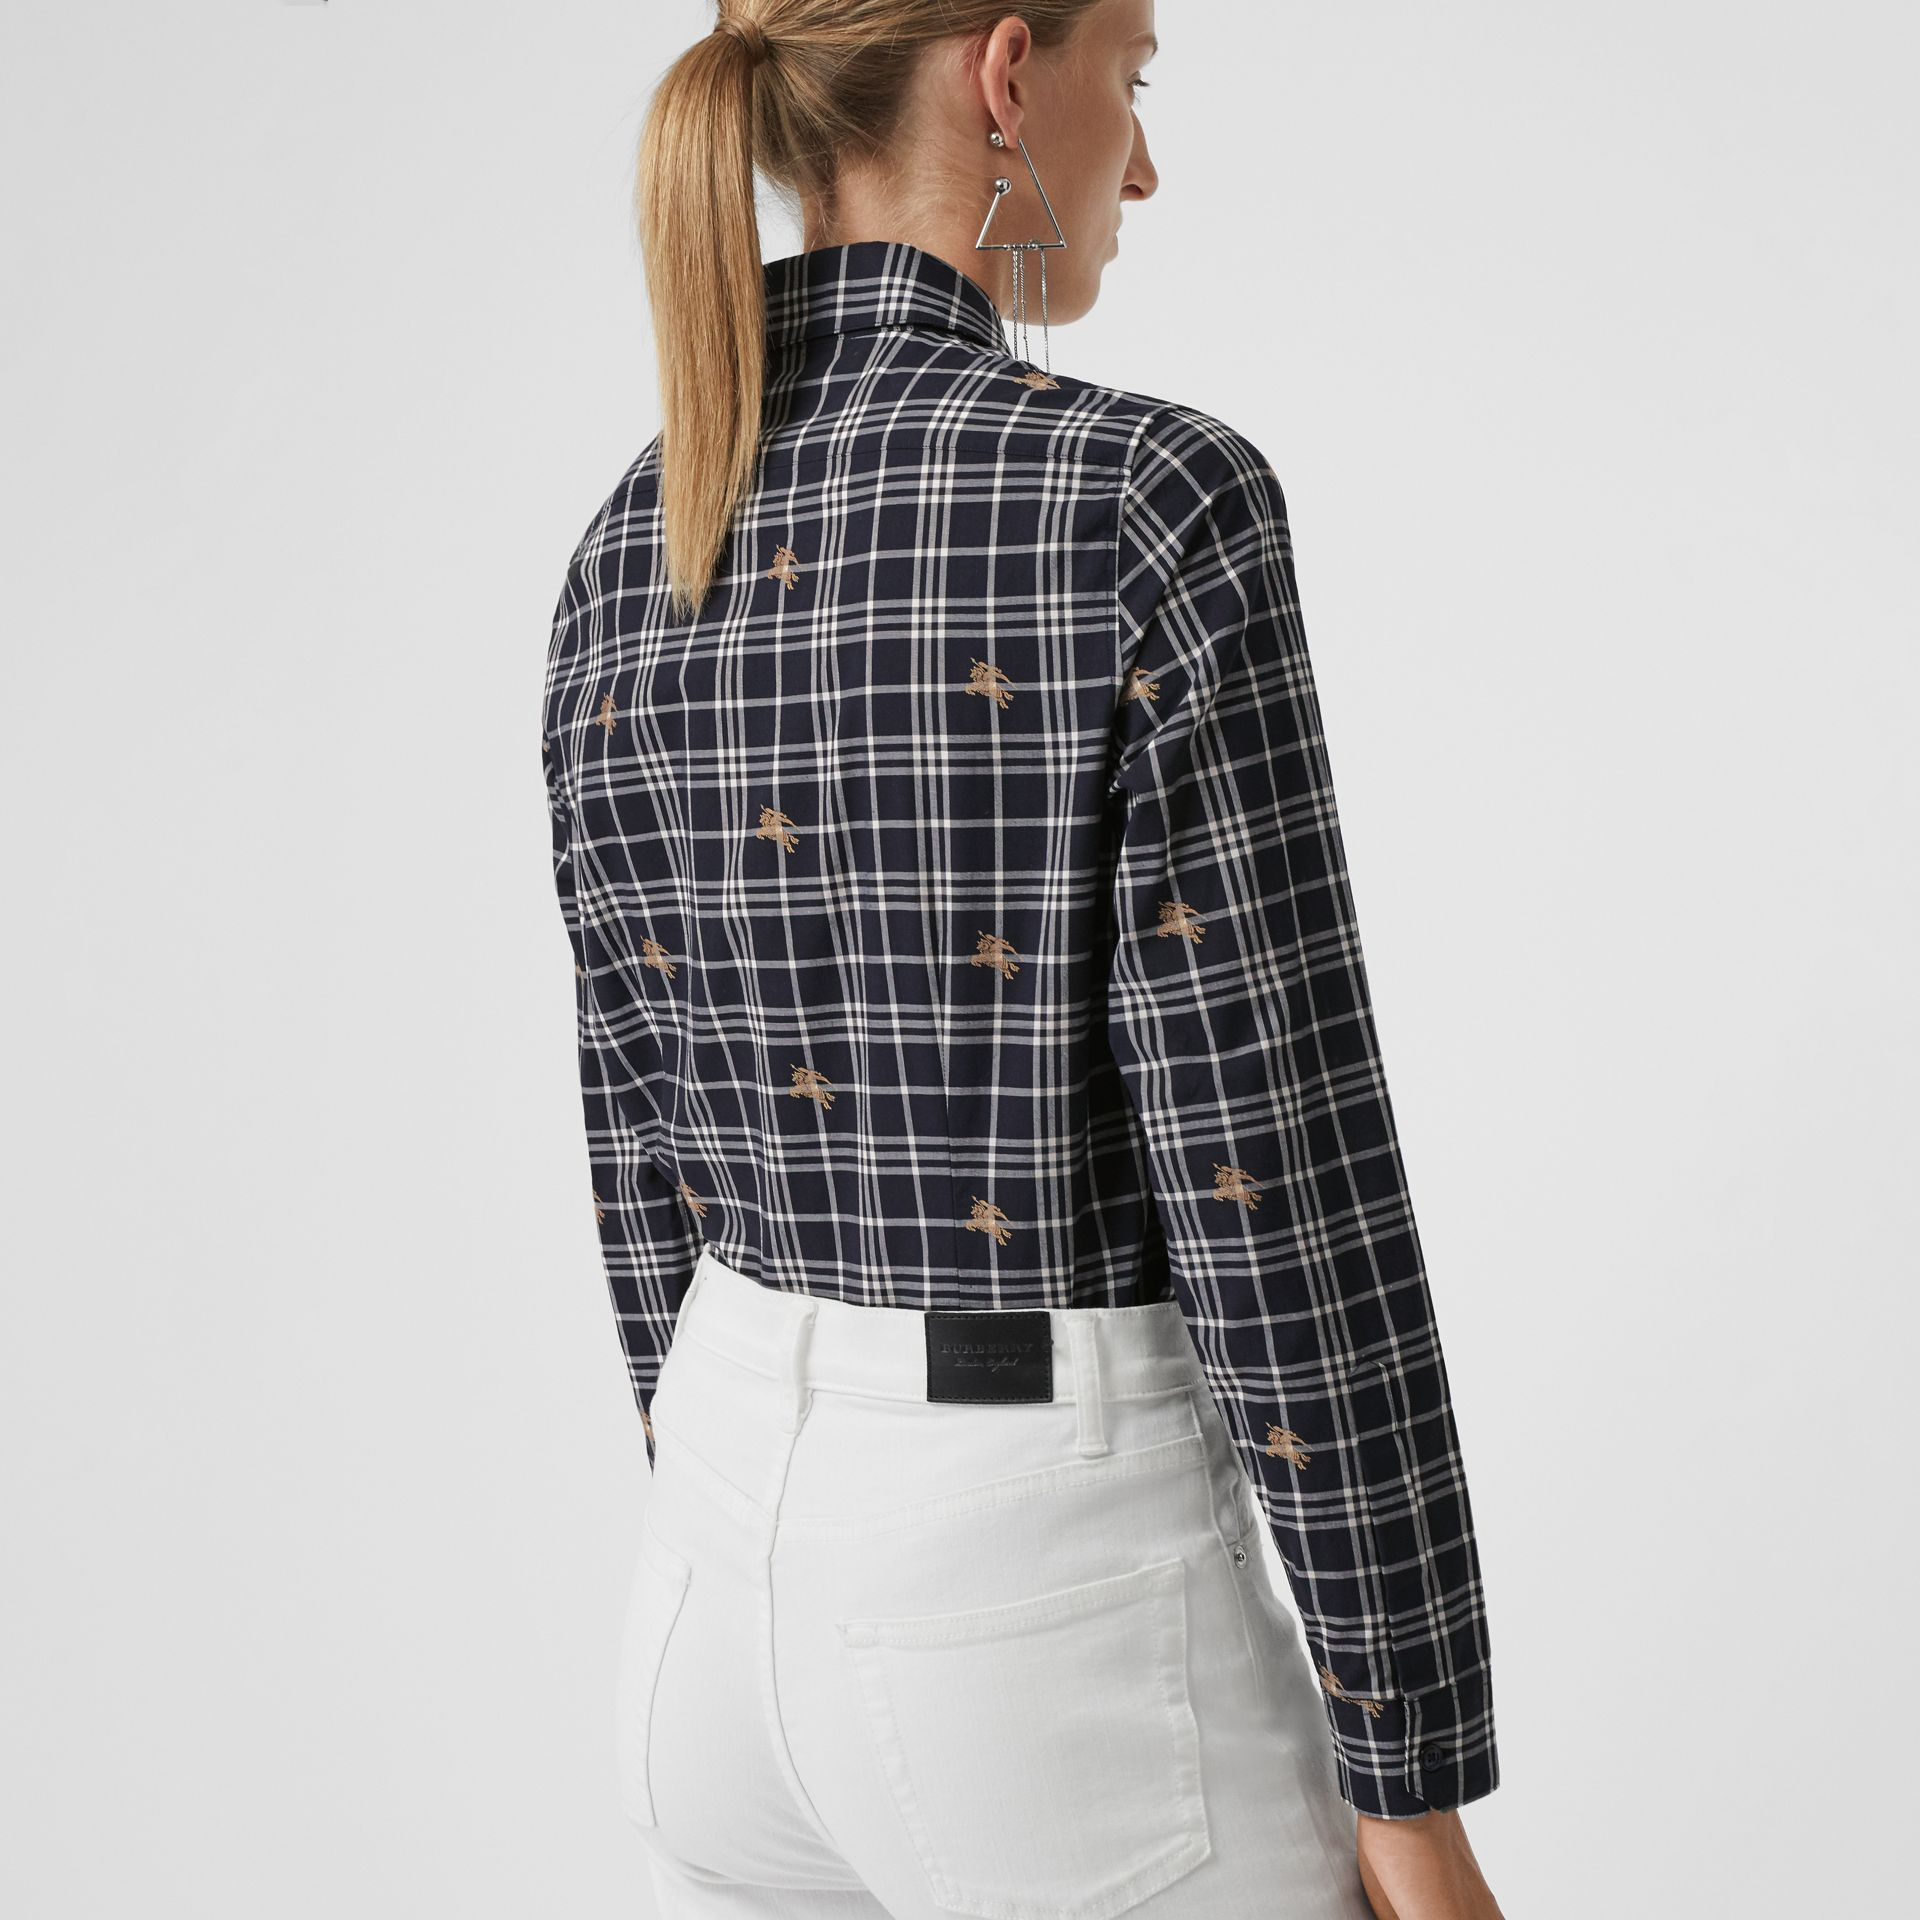 Equestrian Knight Check Cotton Shirt in Navy - Women | Burberry Canada - gallery image 2